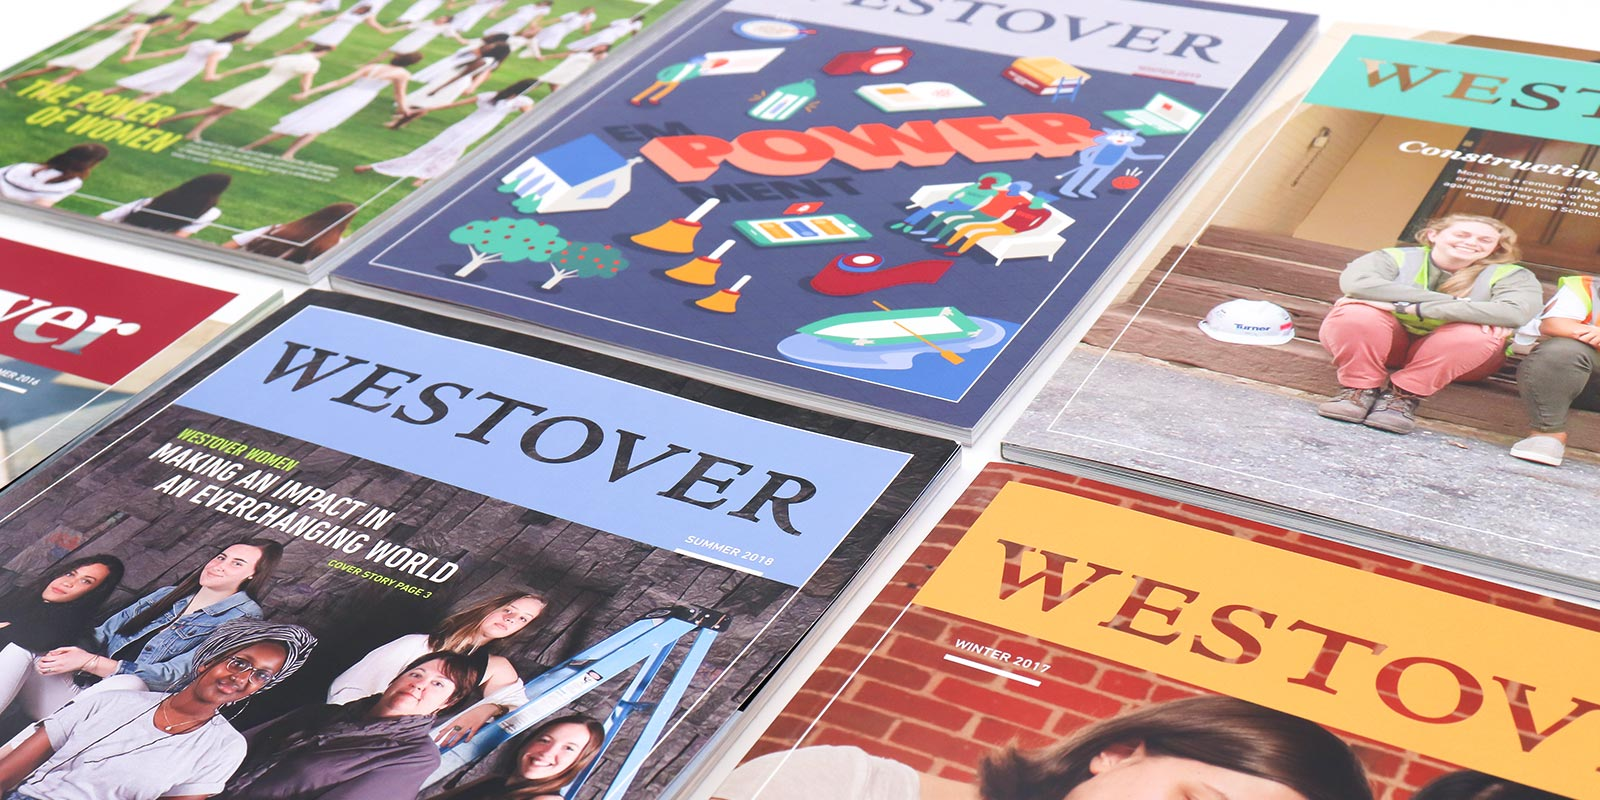 Westover School magazine design